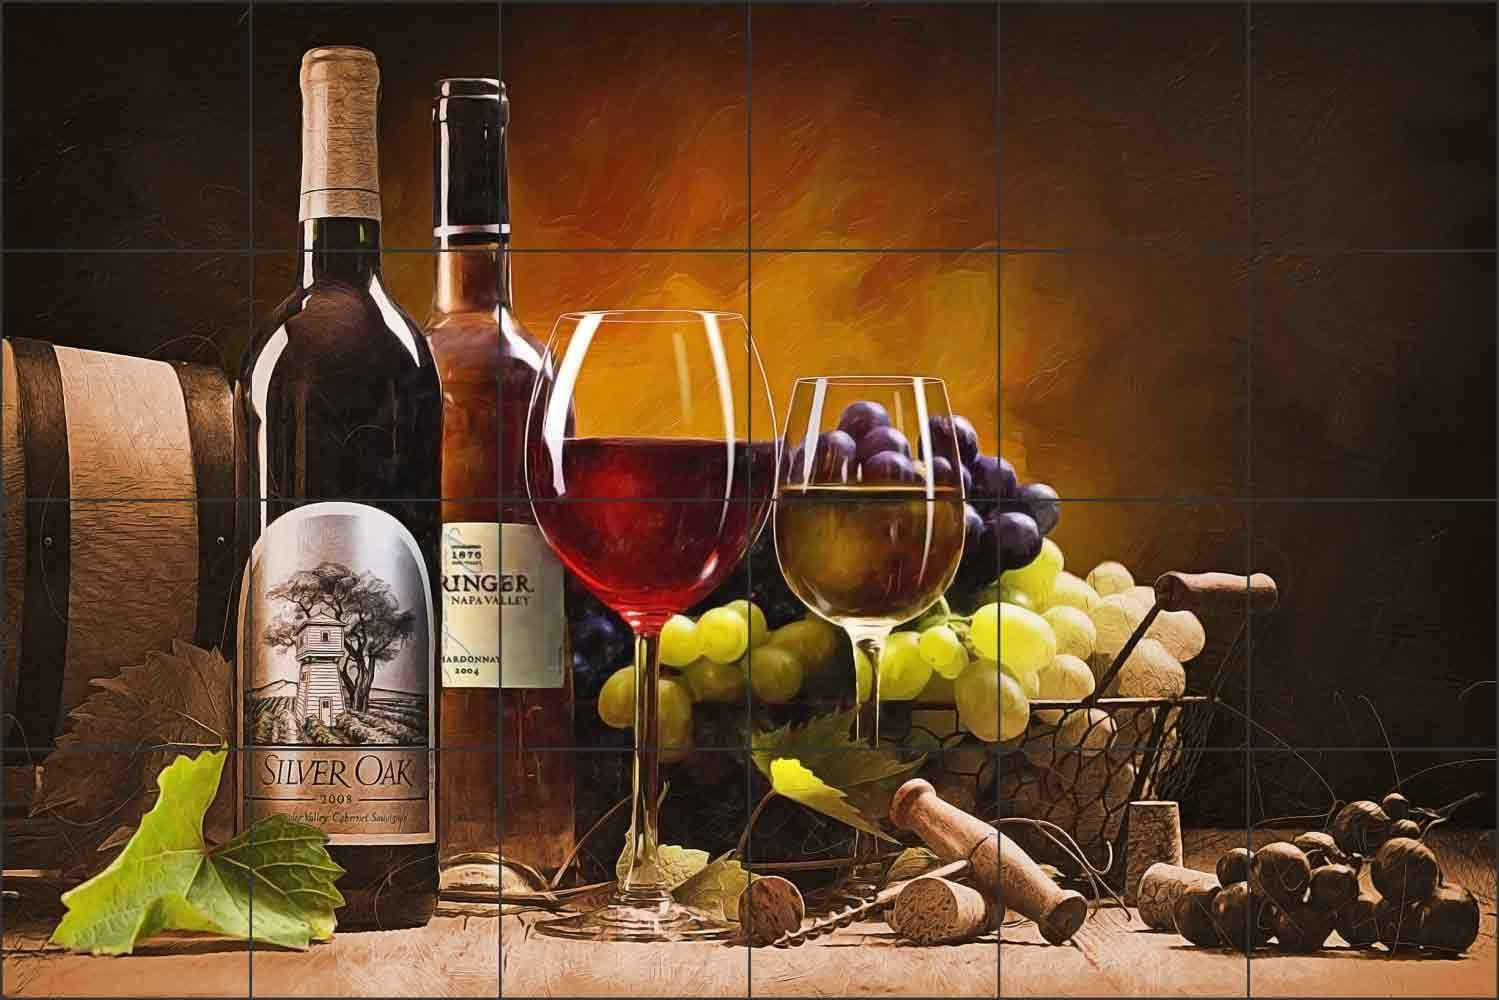 Original Photography on Porcelain Tile 6X6 Still Life with Wine and Cheese